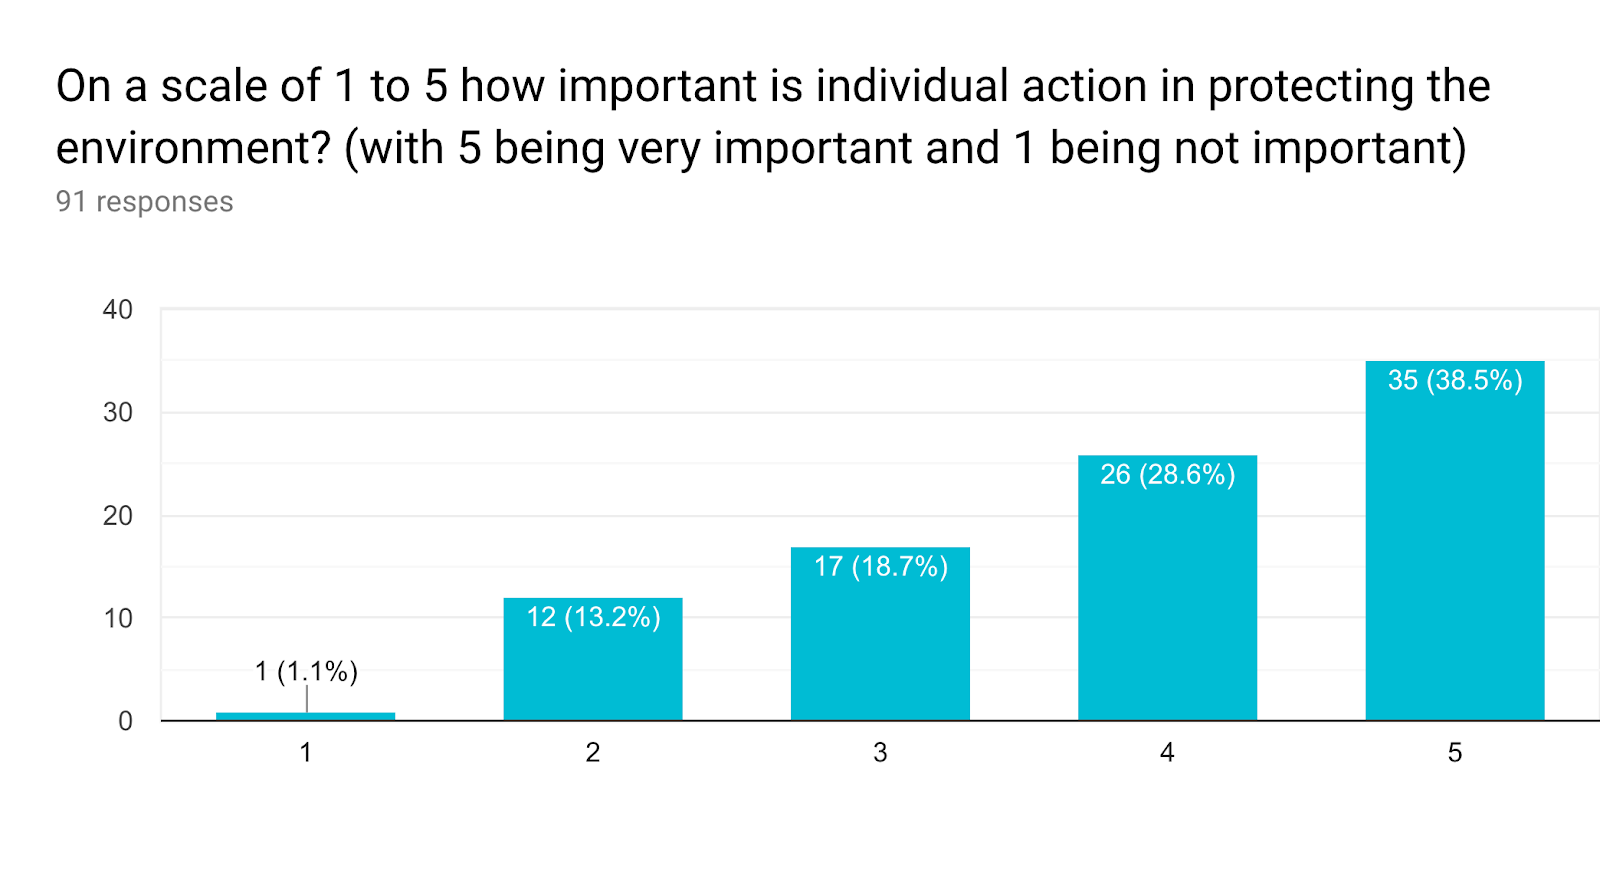 Forms response chart. Question title: On a scale of 1 to 5 how important is individual action in protecting the environment? (with 5 being very important and 1 being not important). Number of responses: 91 responses.